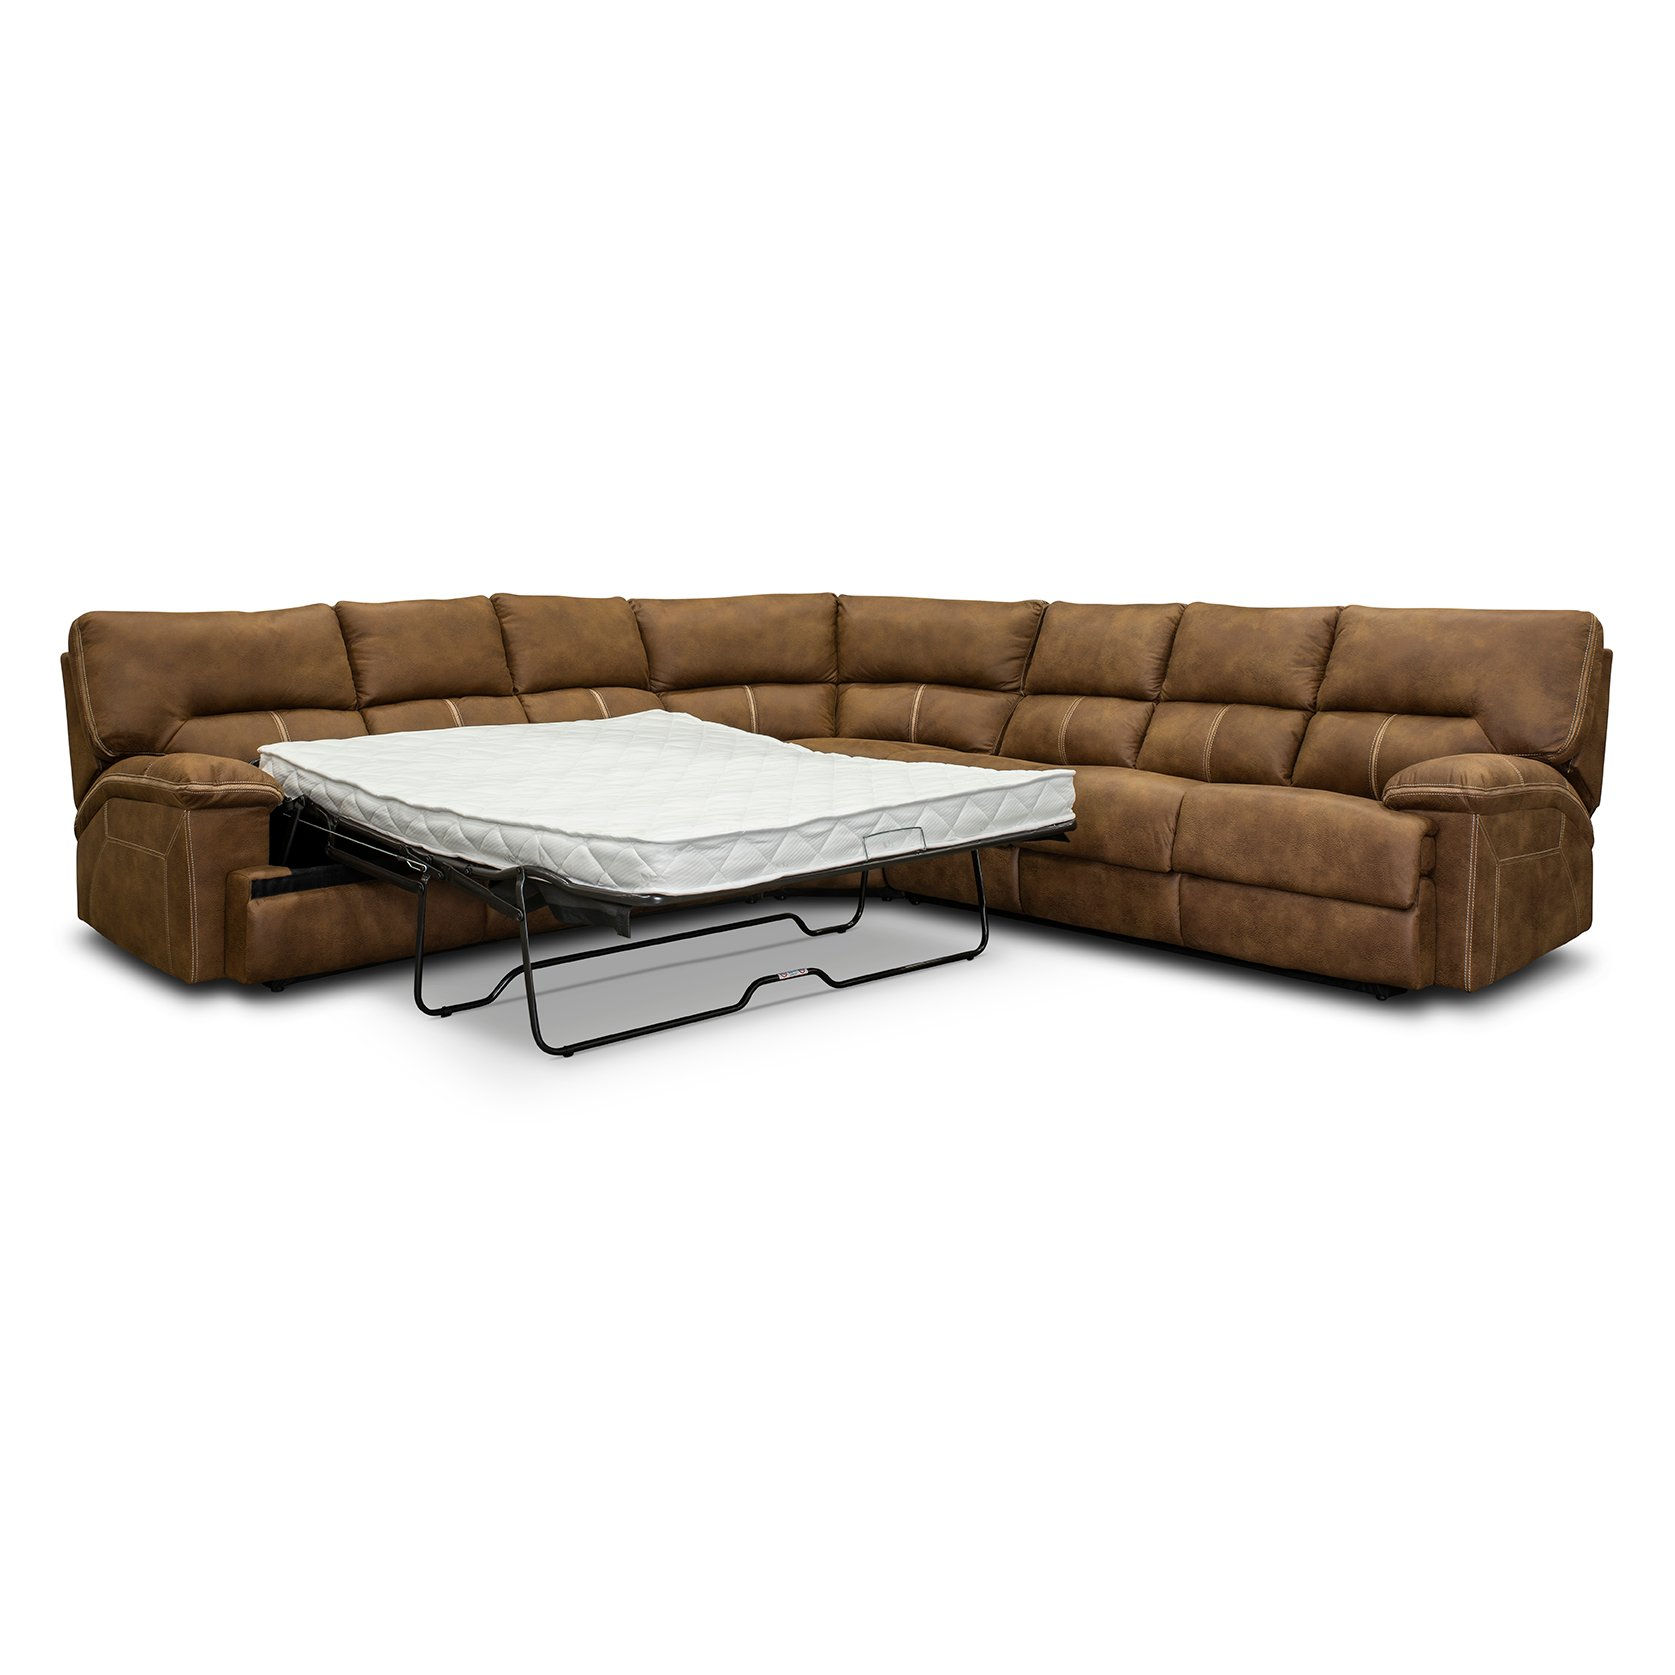 Mocha Brown 3 Piece Double Sofa Bed Sectional Parker Valley